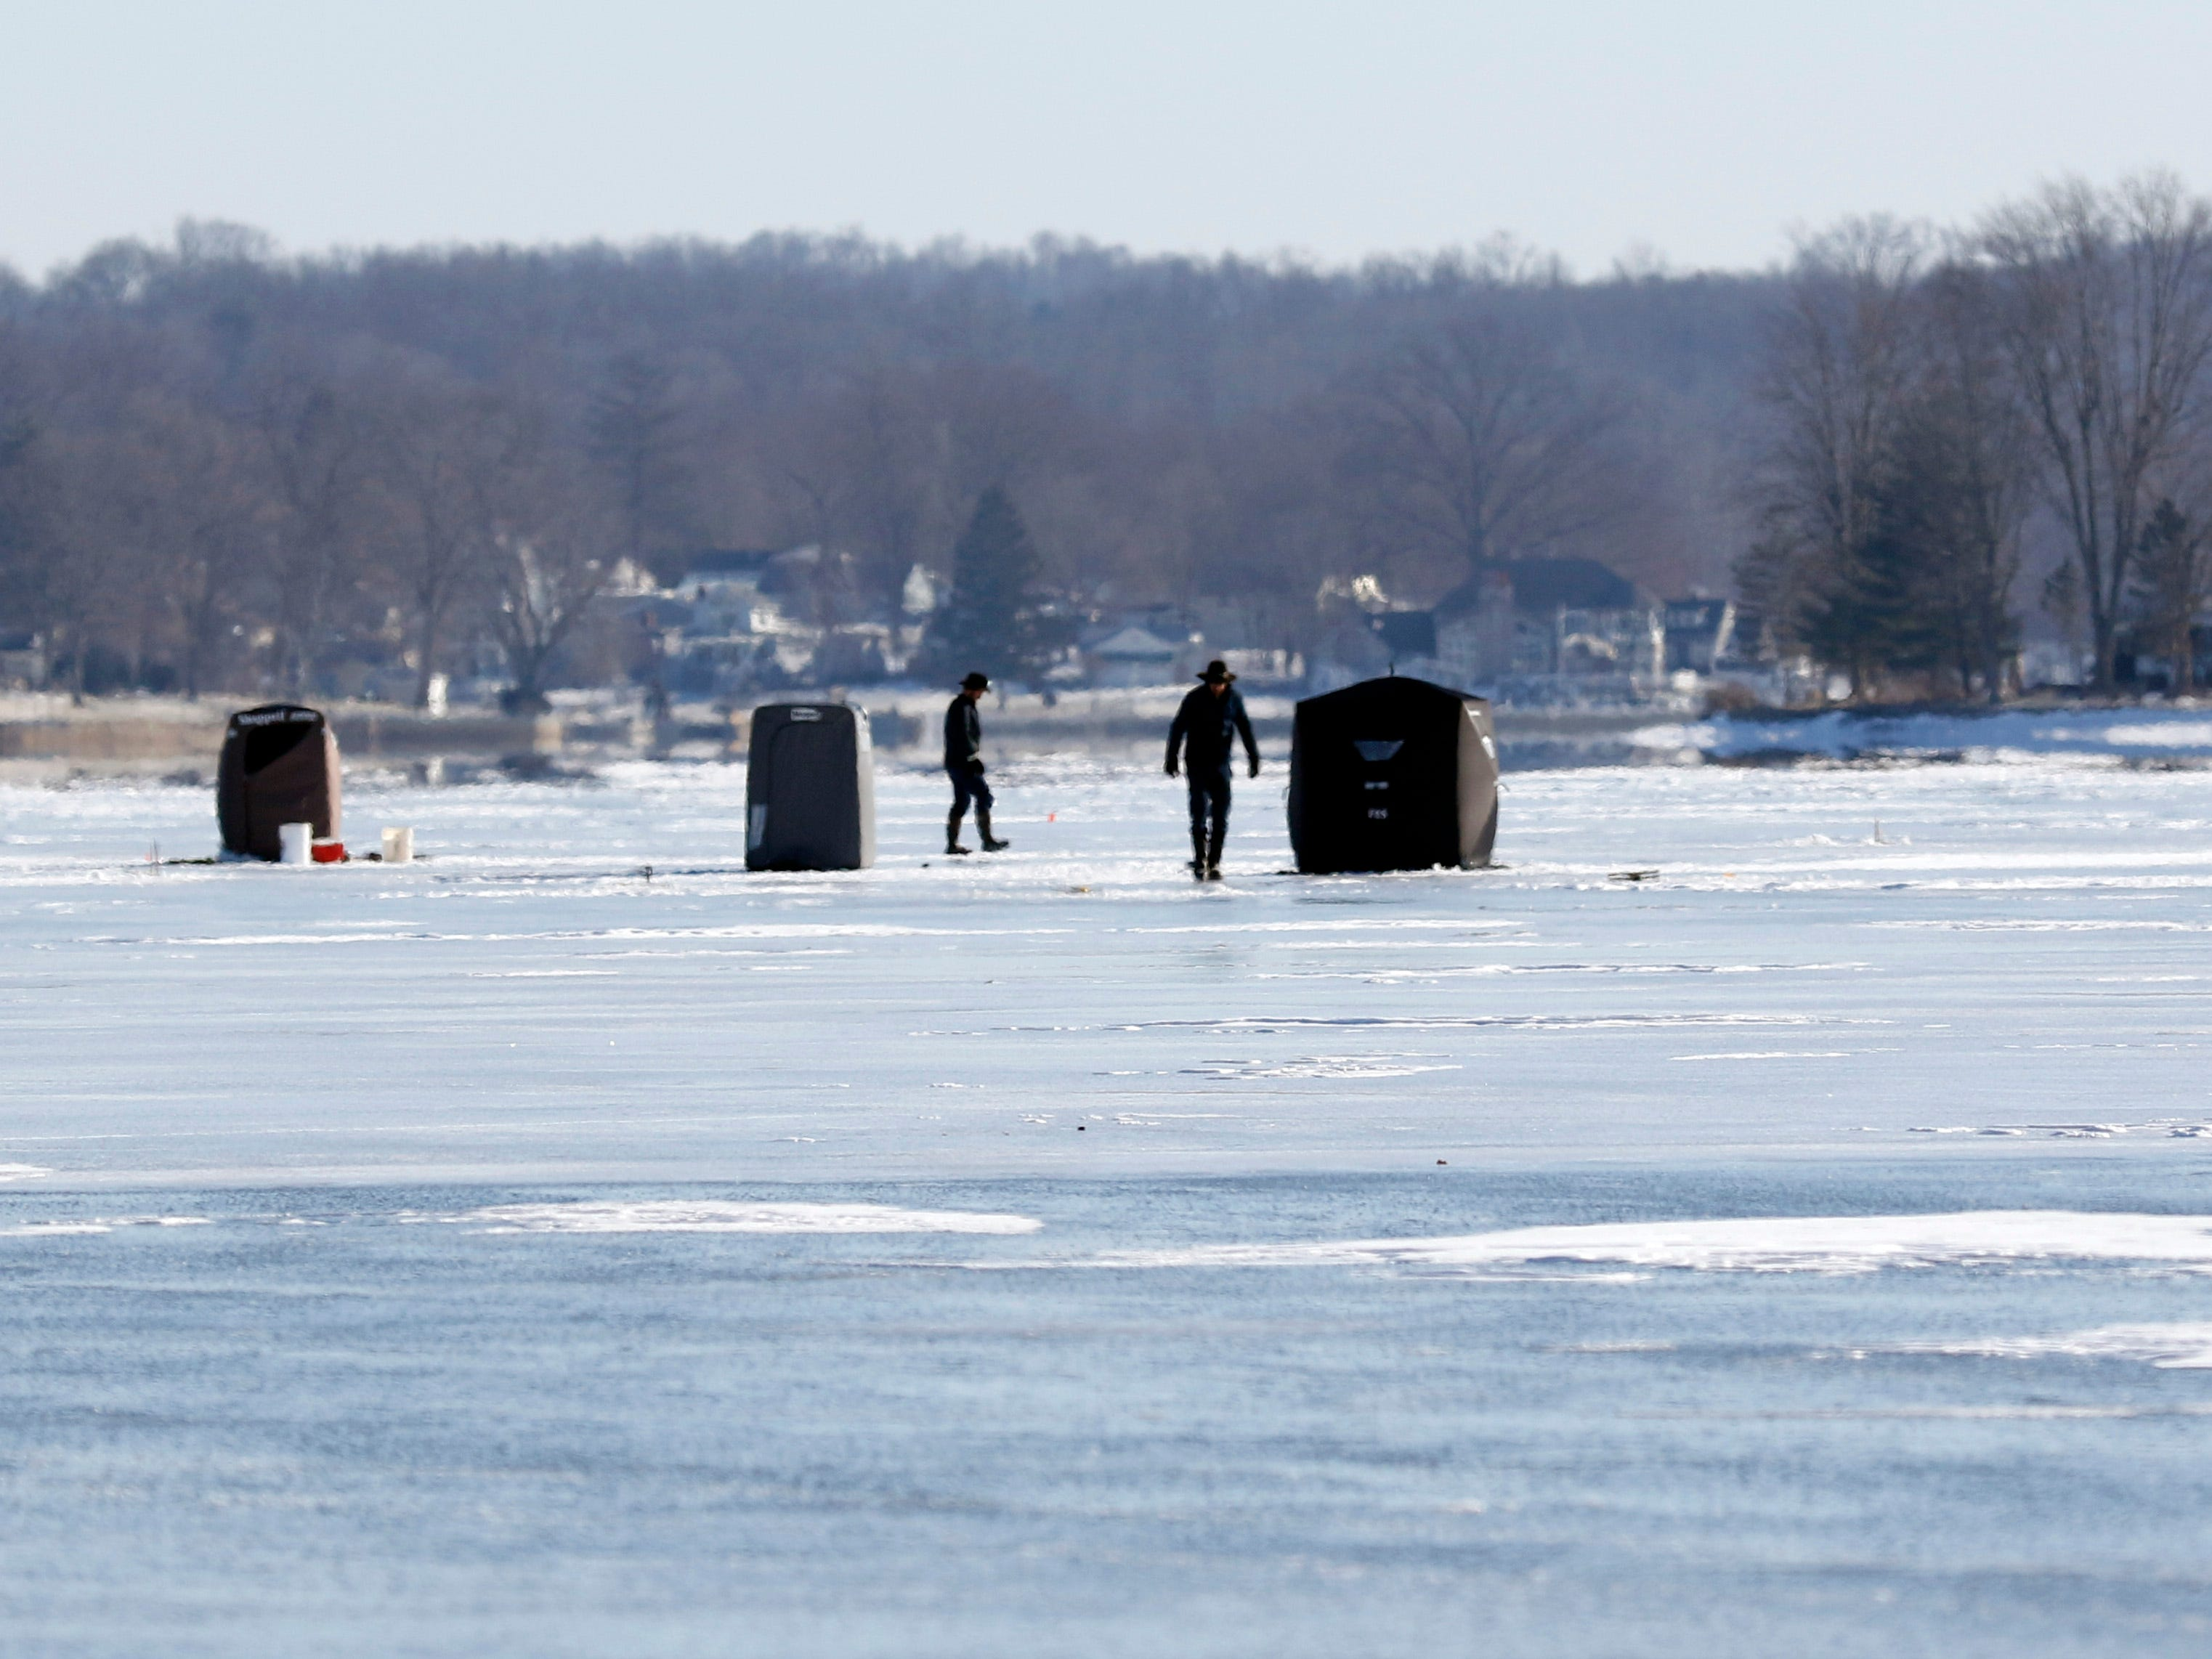 People walk among their shanties and tip-ups Thursday morning, Jan. 31, 2019, on Buckeye Lake. Freezing temperatures this week have formed more than five inches of ice on the lake's surface, and despite single digit temperatures and a wind chill advisory several people took the opportunity to ice fish.